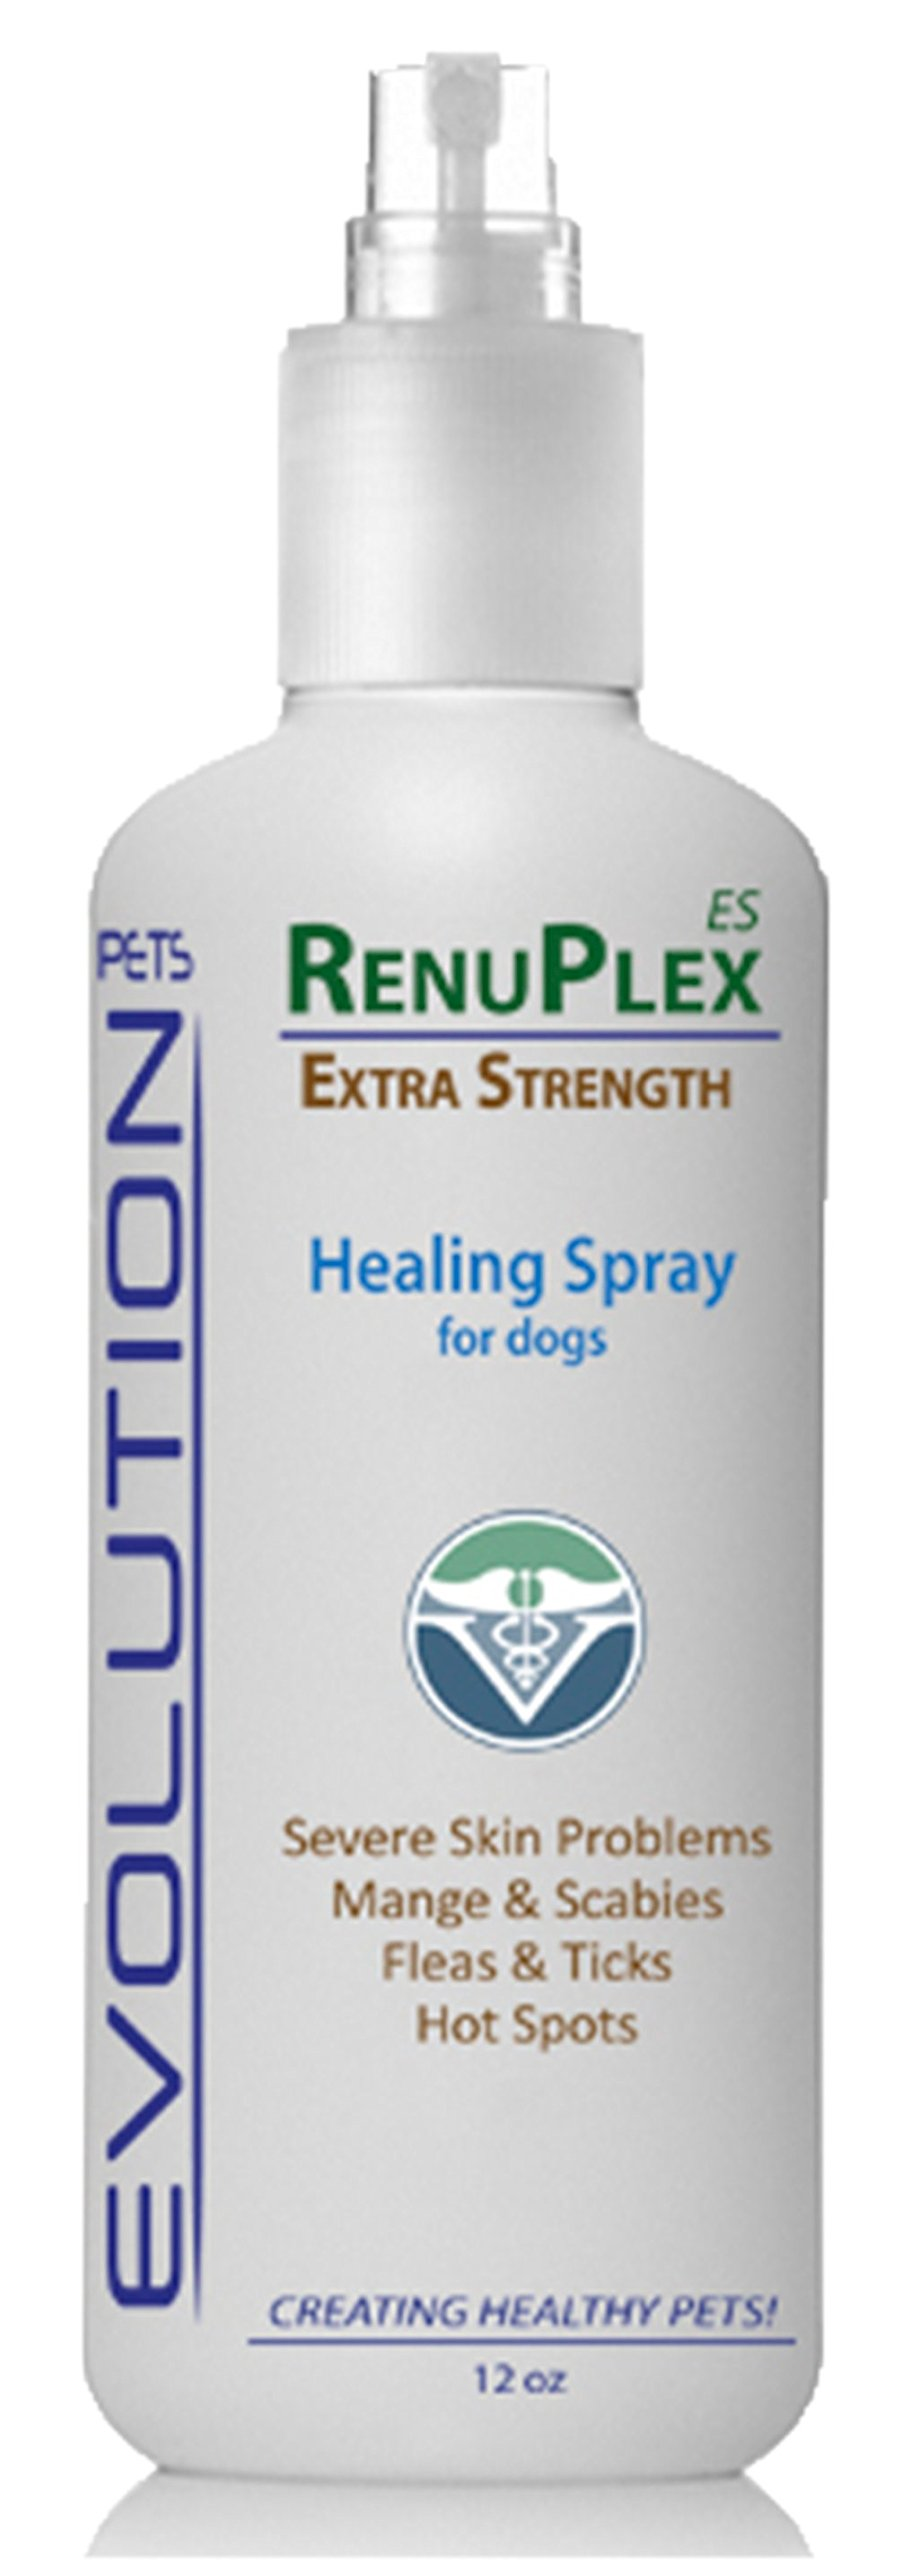 RenuPlex EXTRA Strength Dog Healing Spray for Dog Hot Spots, Mange, Dog Skin Problems Antifungal Dog Hot Spot Spray Also Eliminates Mange, Mites. All Natural. Unconditional Guarantee. Made in USA by RenuPlex